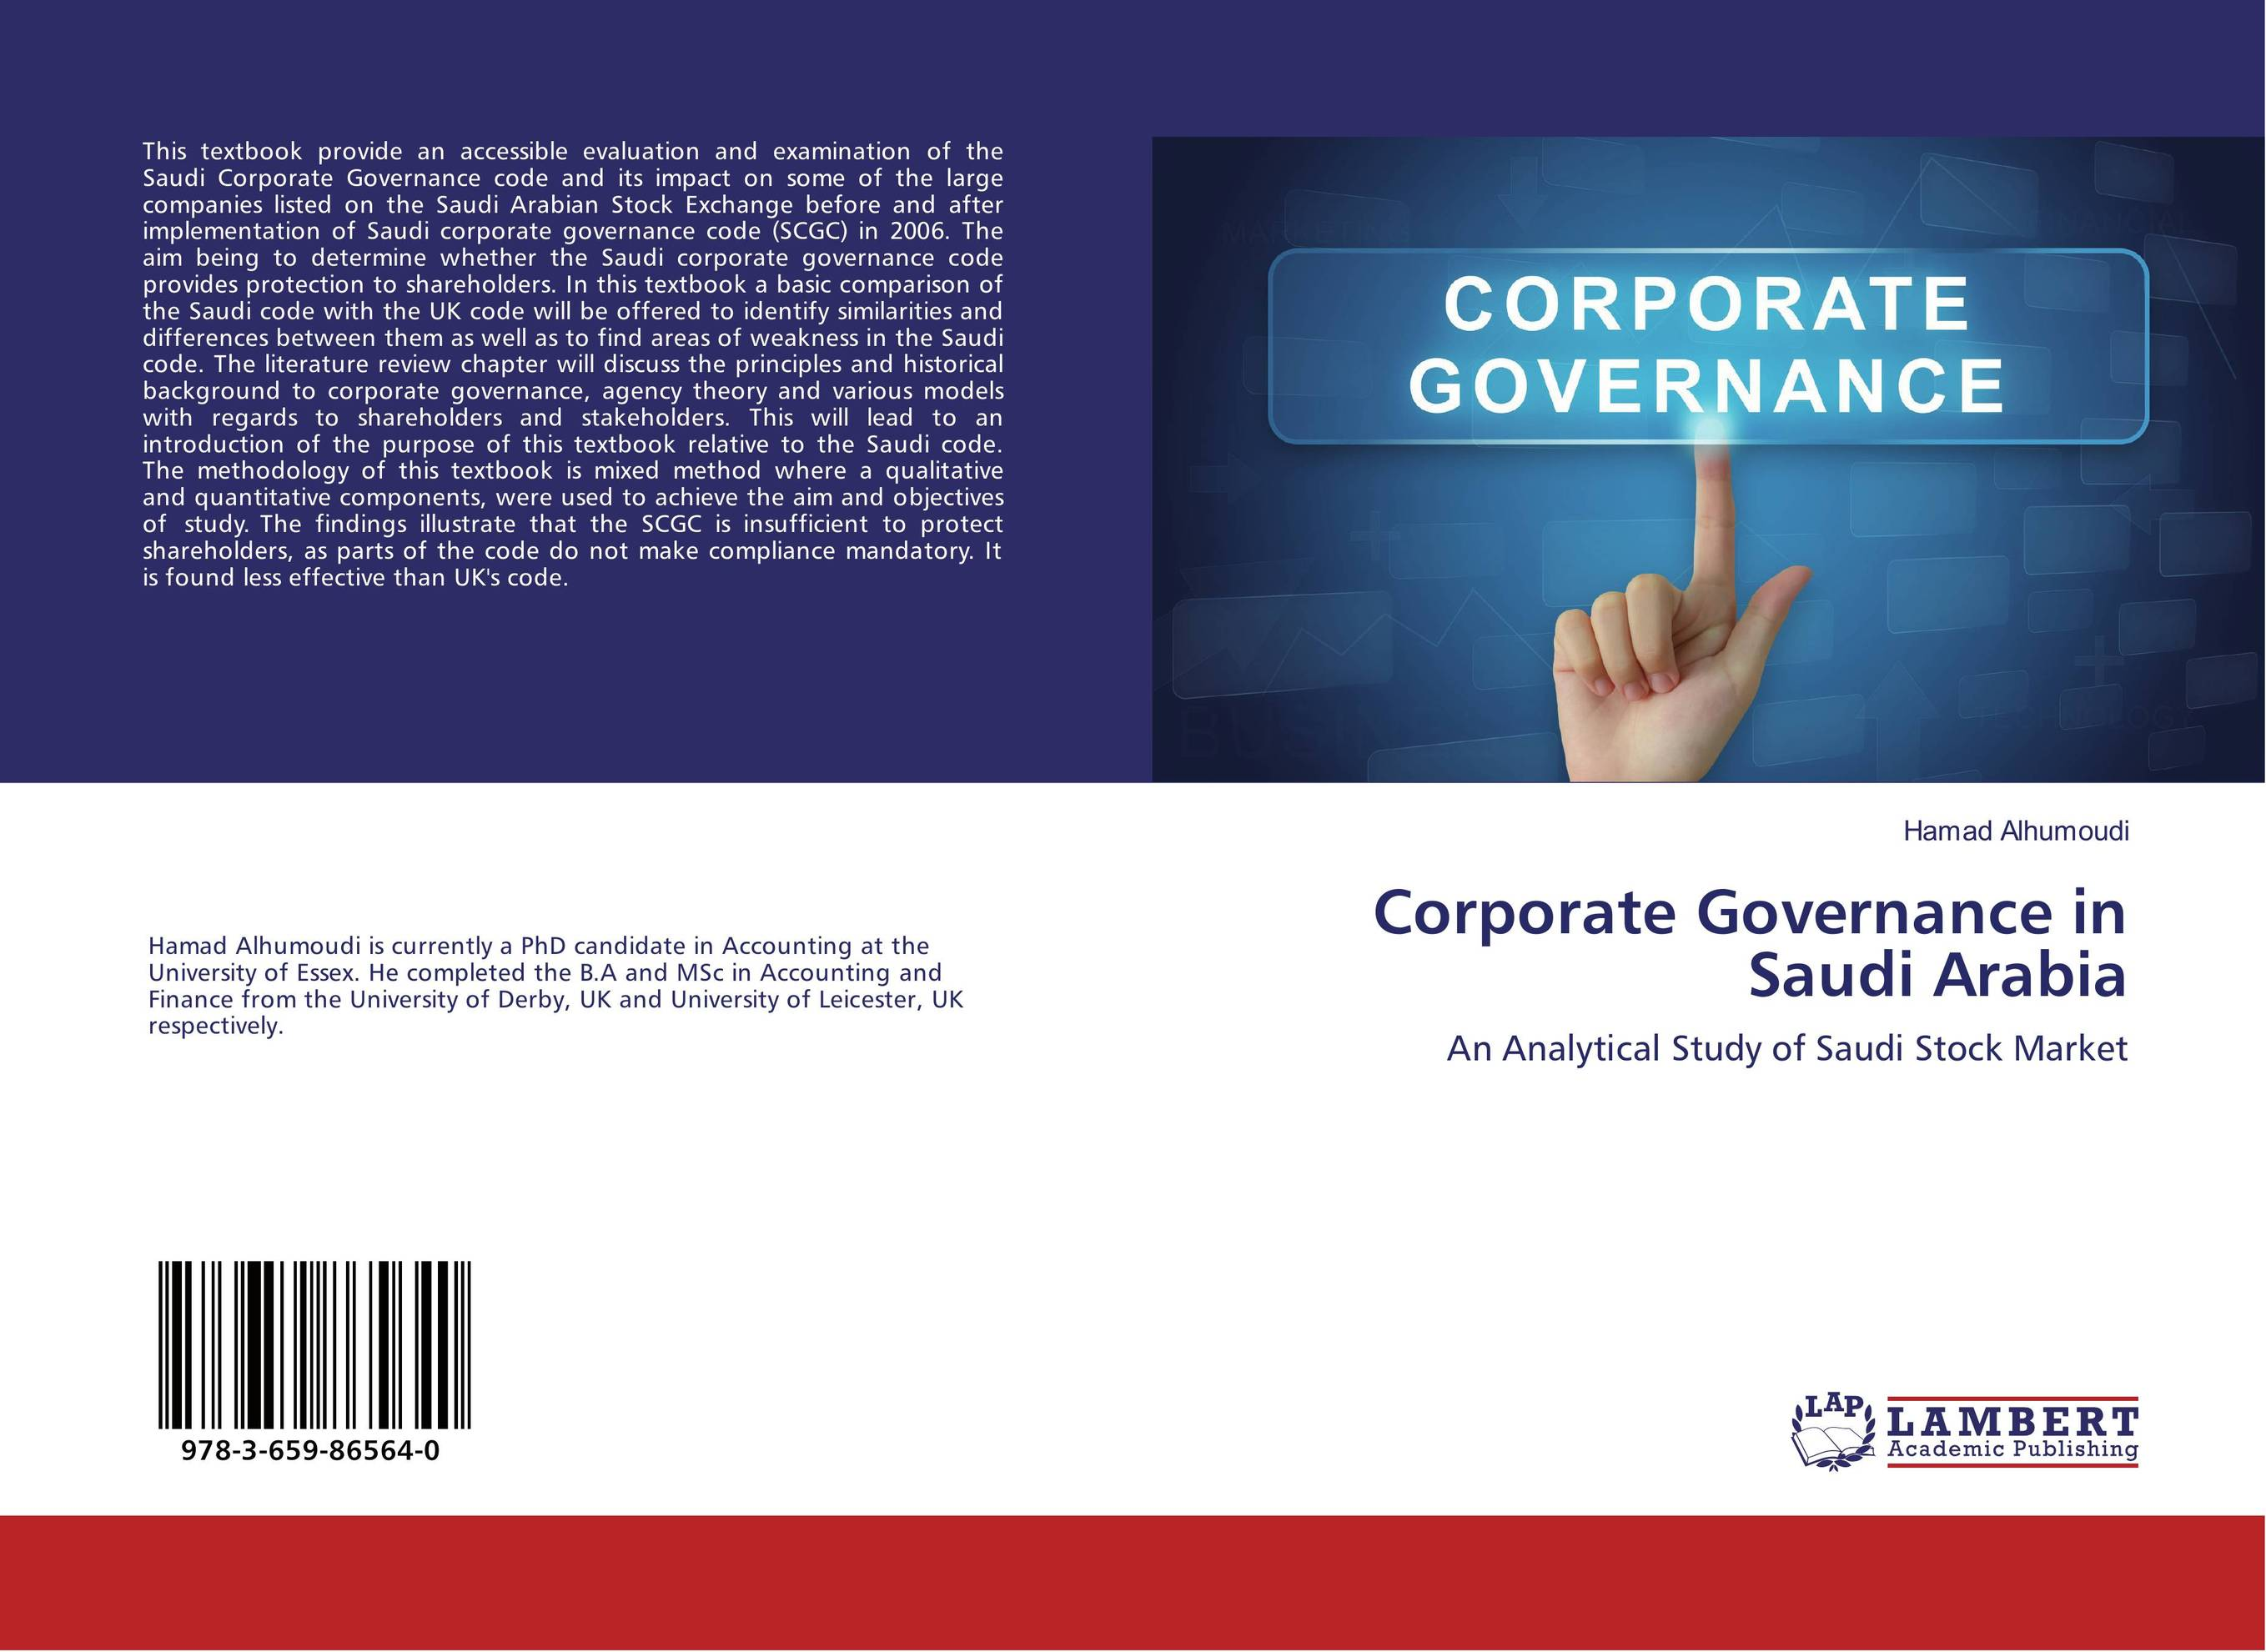 Corporate Governance in Saudi Arabia